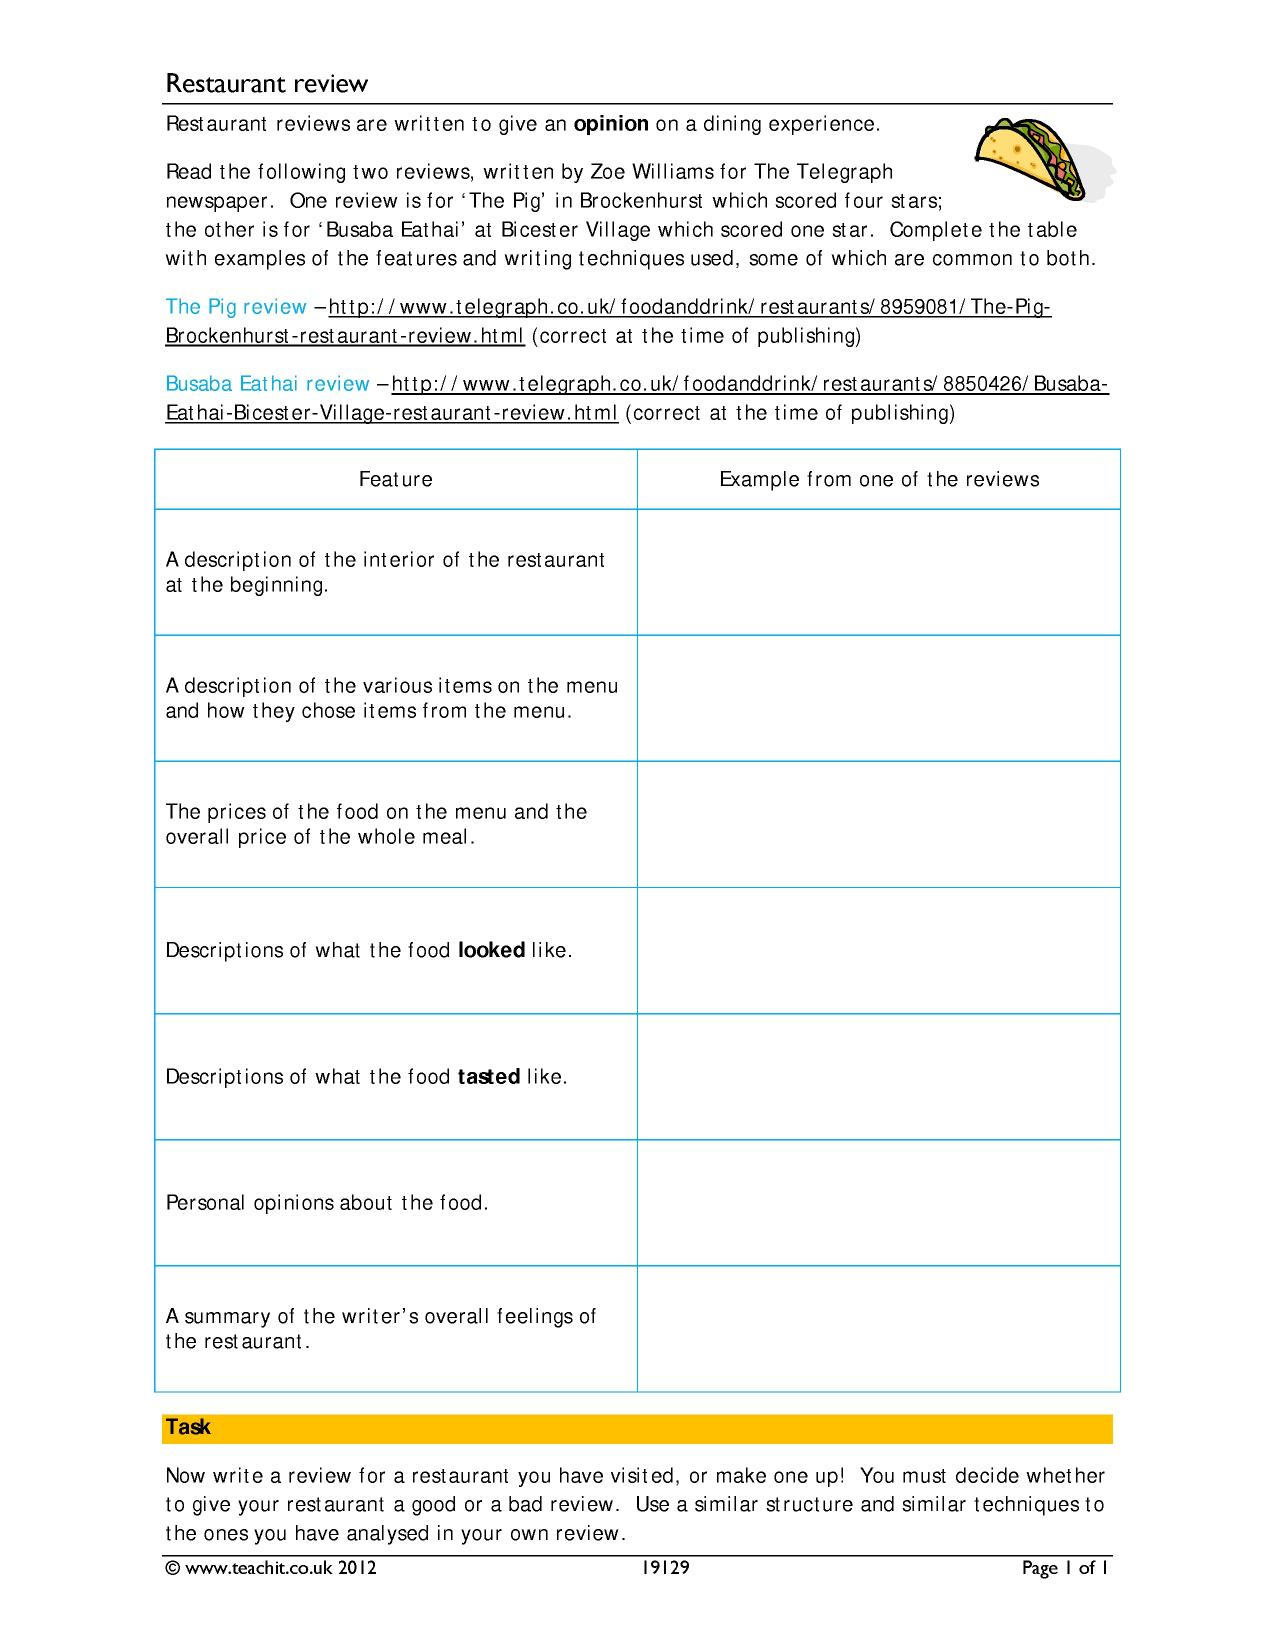 restaurant evaluations essays Trs02-9912-2 sample restaurant evaluation page: 1 of 6 0 a arrive within one to two minutes to take your order service 1 a check back to ensure that your meal was.